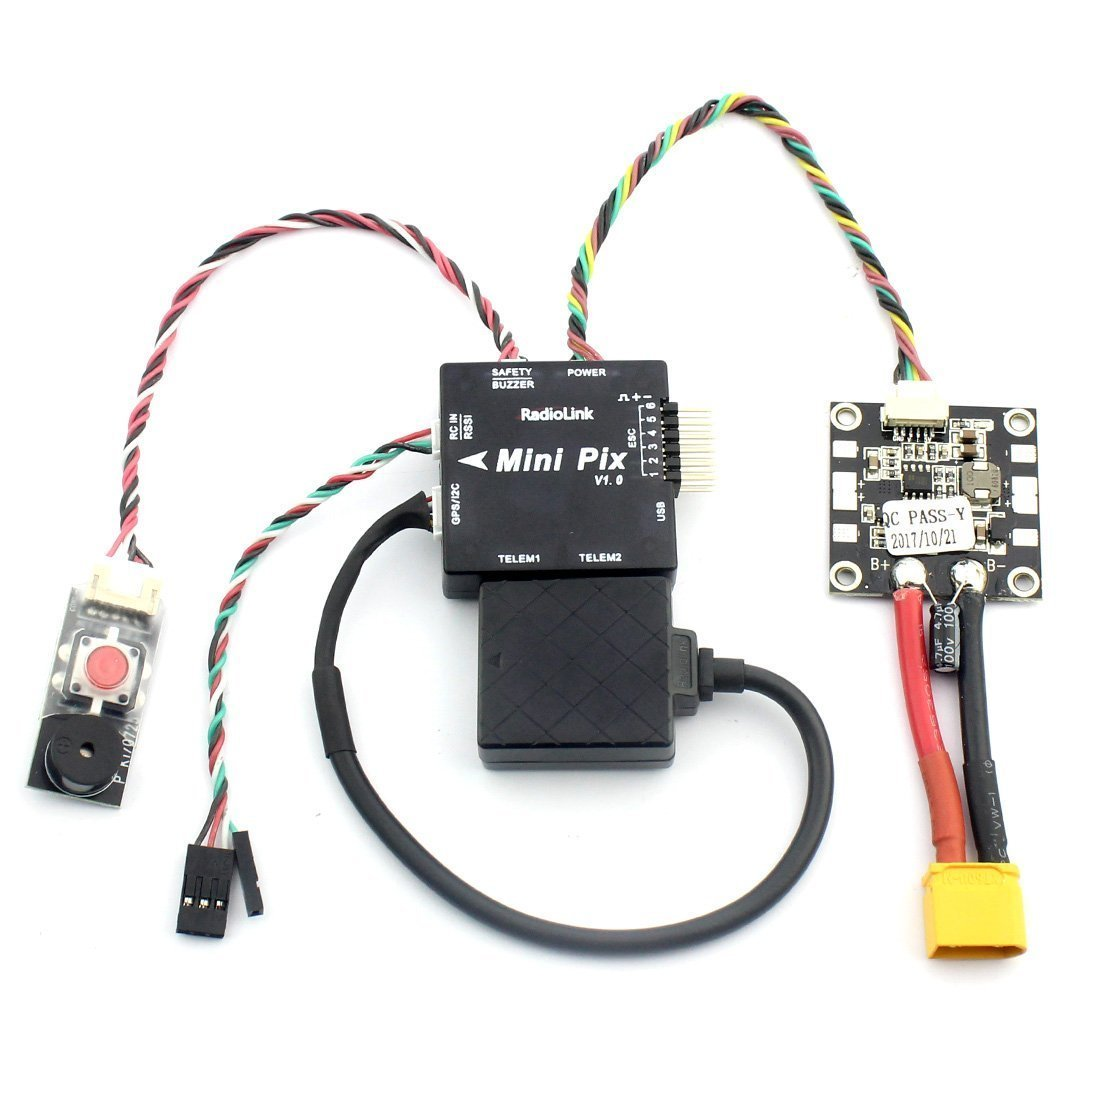 Radiolink Mini Pixhawk F4 Flight Controller with TS100 M8N GPS - Click Image to Close